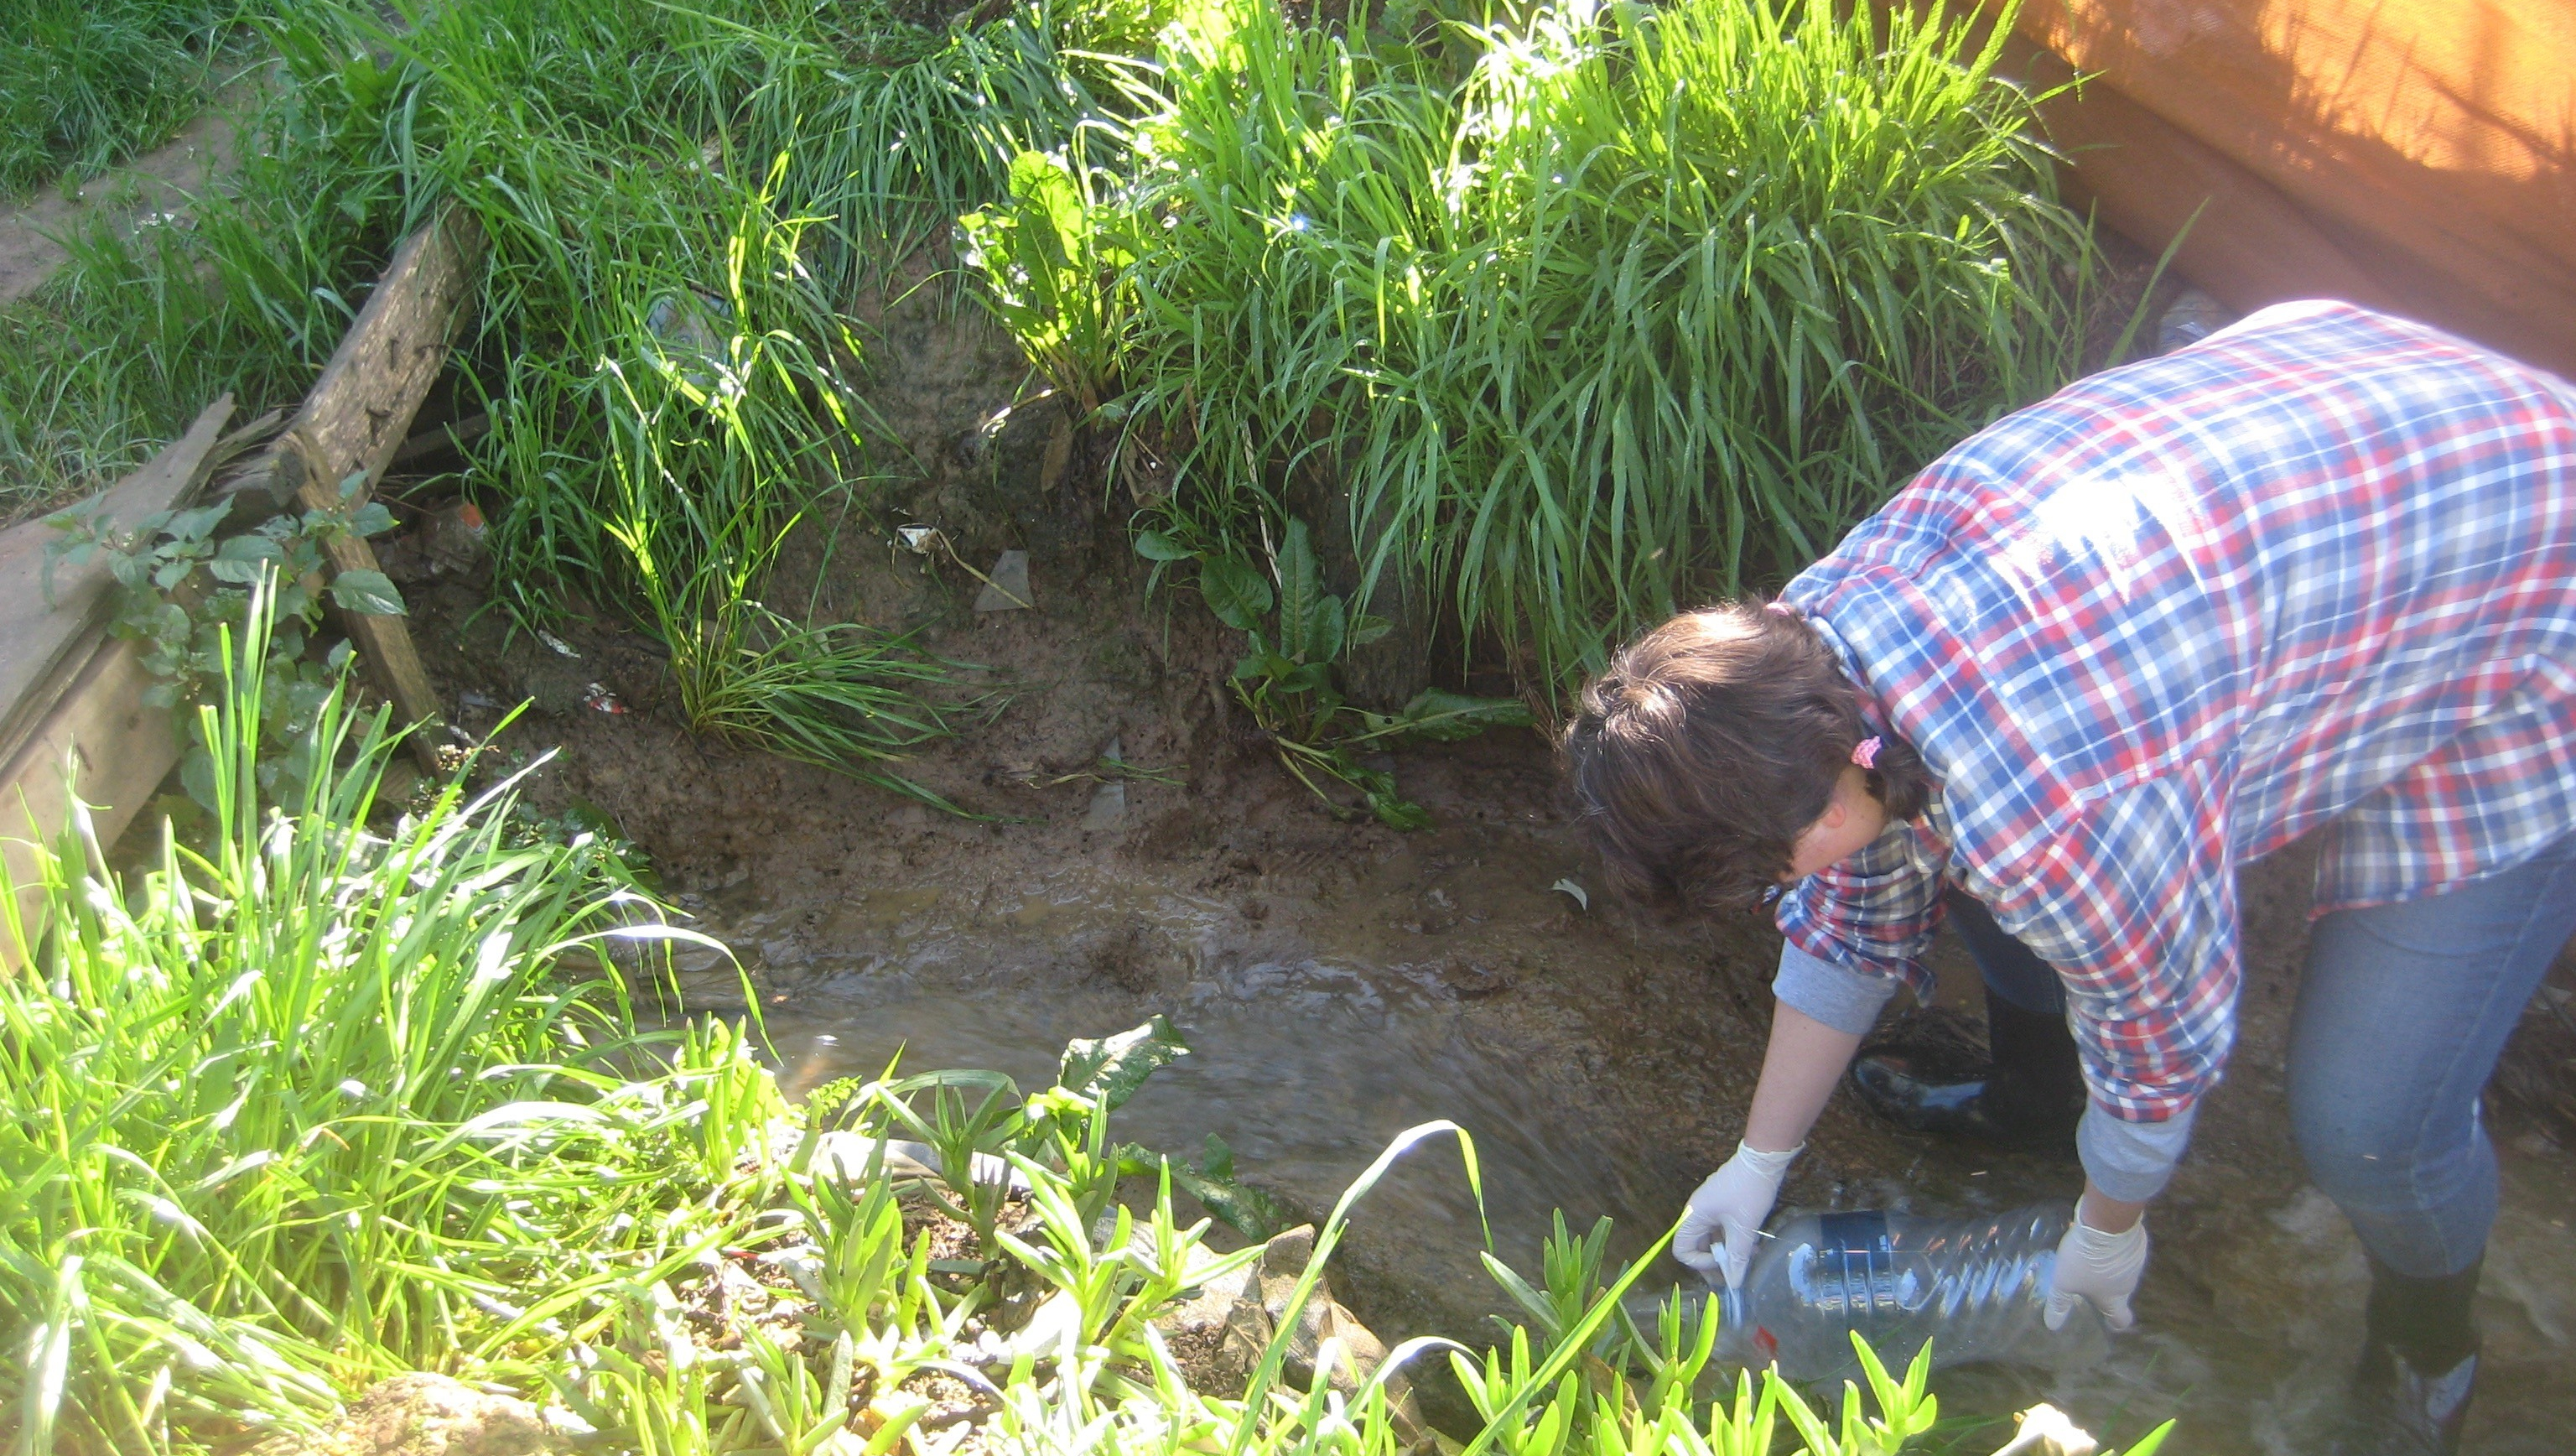 Olivia taking water samples in Enkanini, South Africa.